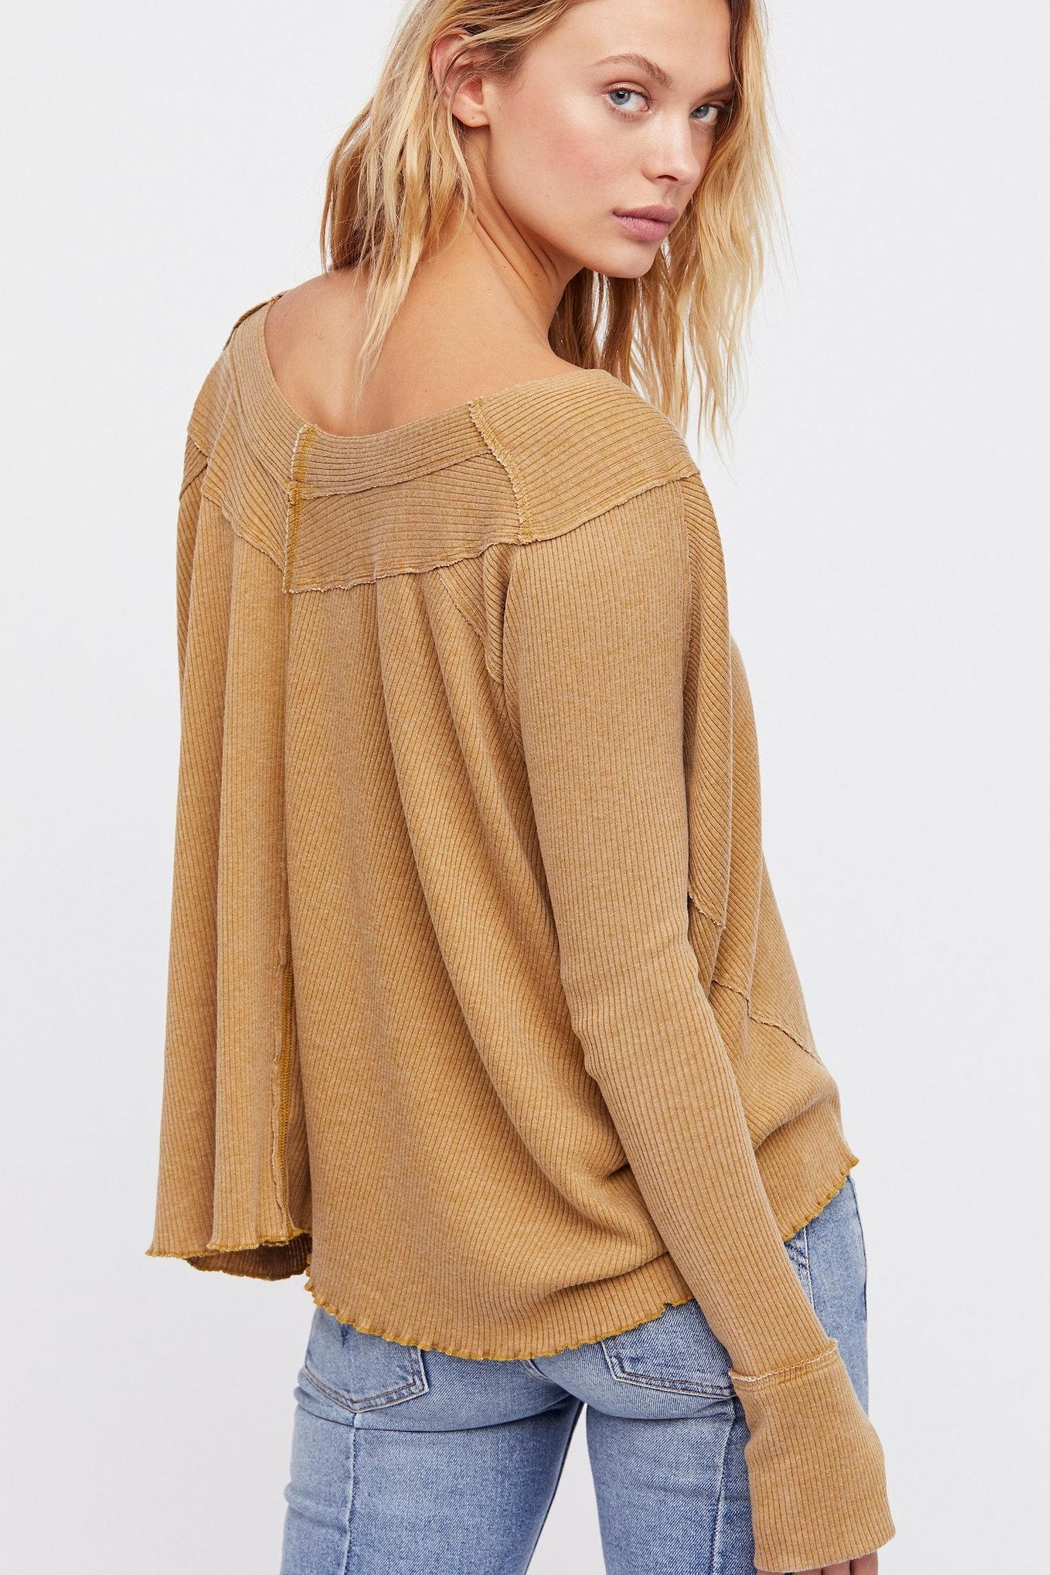 Free People Oceanview Top - Front Full Image